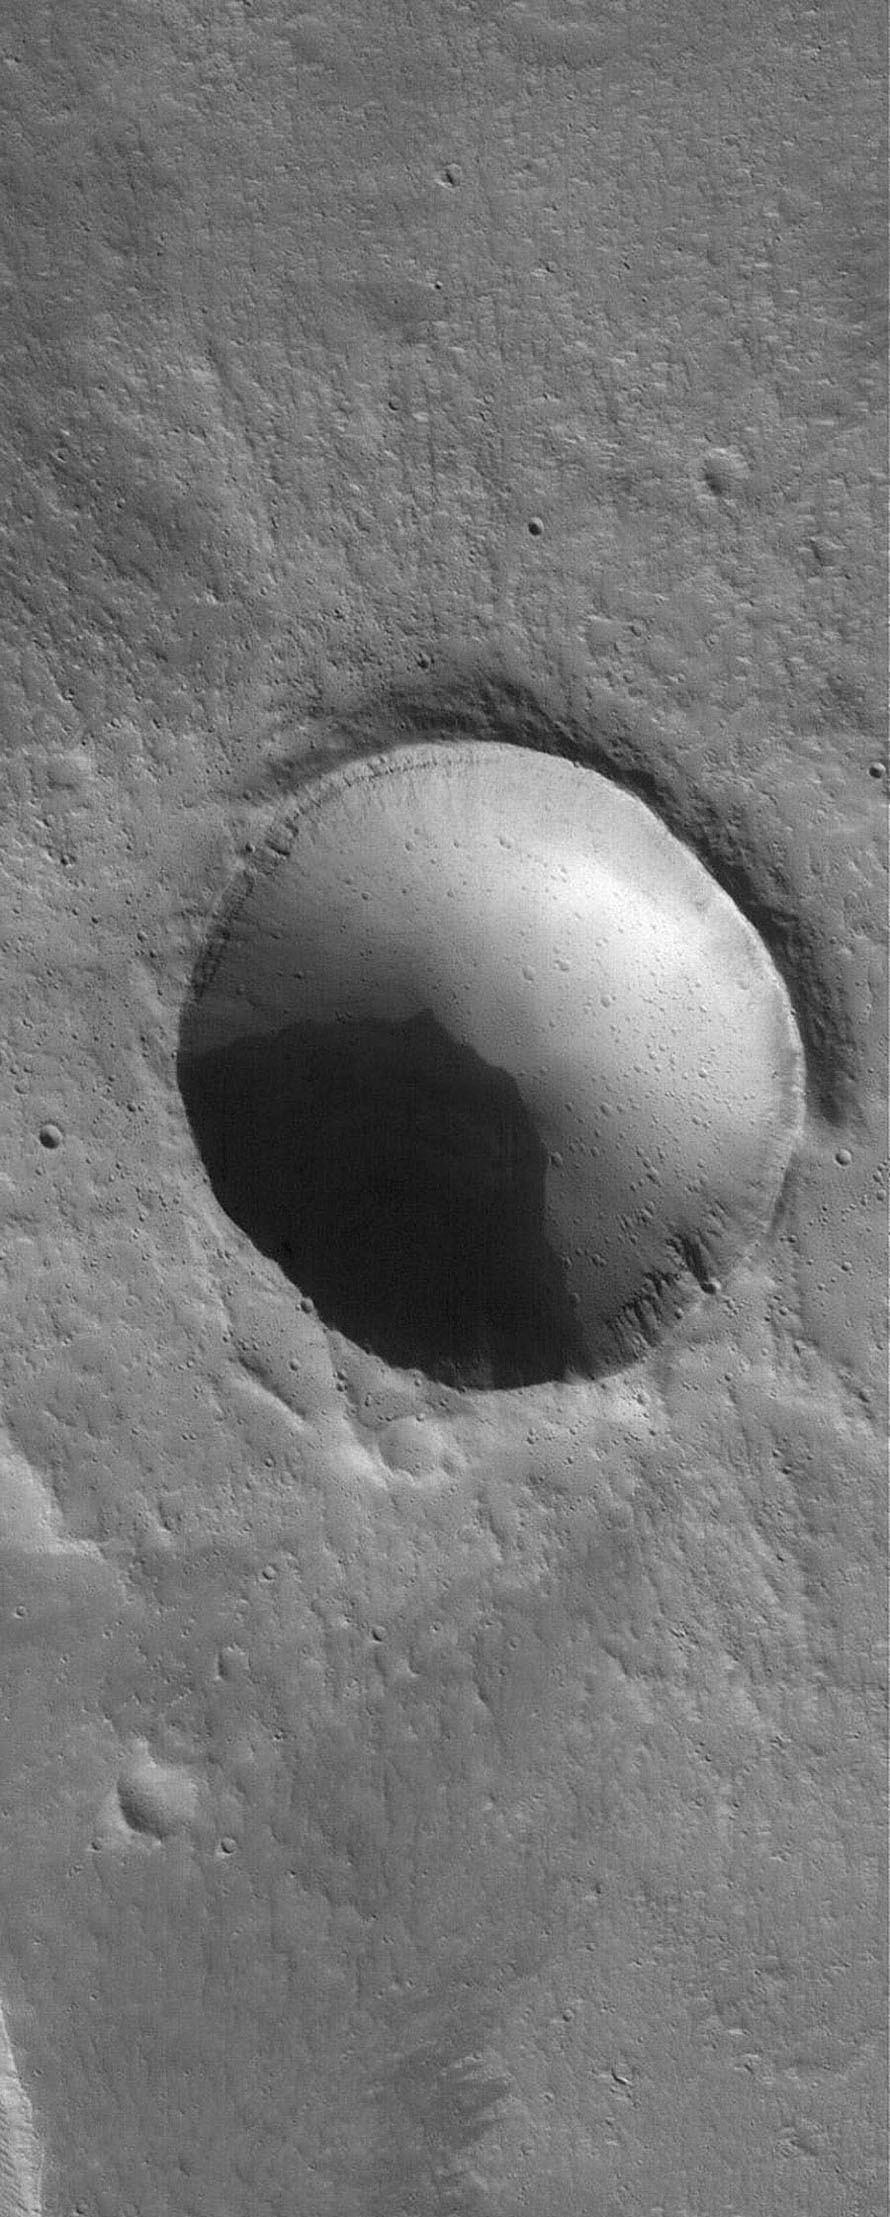 NASA's Mars Global Surveyor shows a meteor impact crater in northern Tharsis. This crater is a bit more than 2 kilometers wide, about twice the size of the famous Meteor Crater in northern Arizona, USA. Many smaller craters are evident.